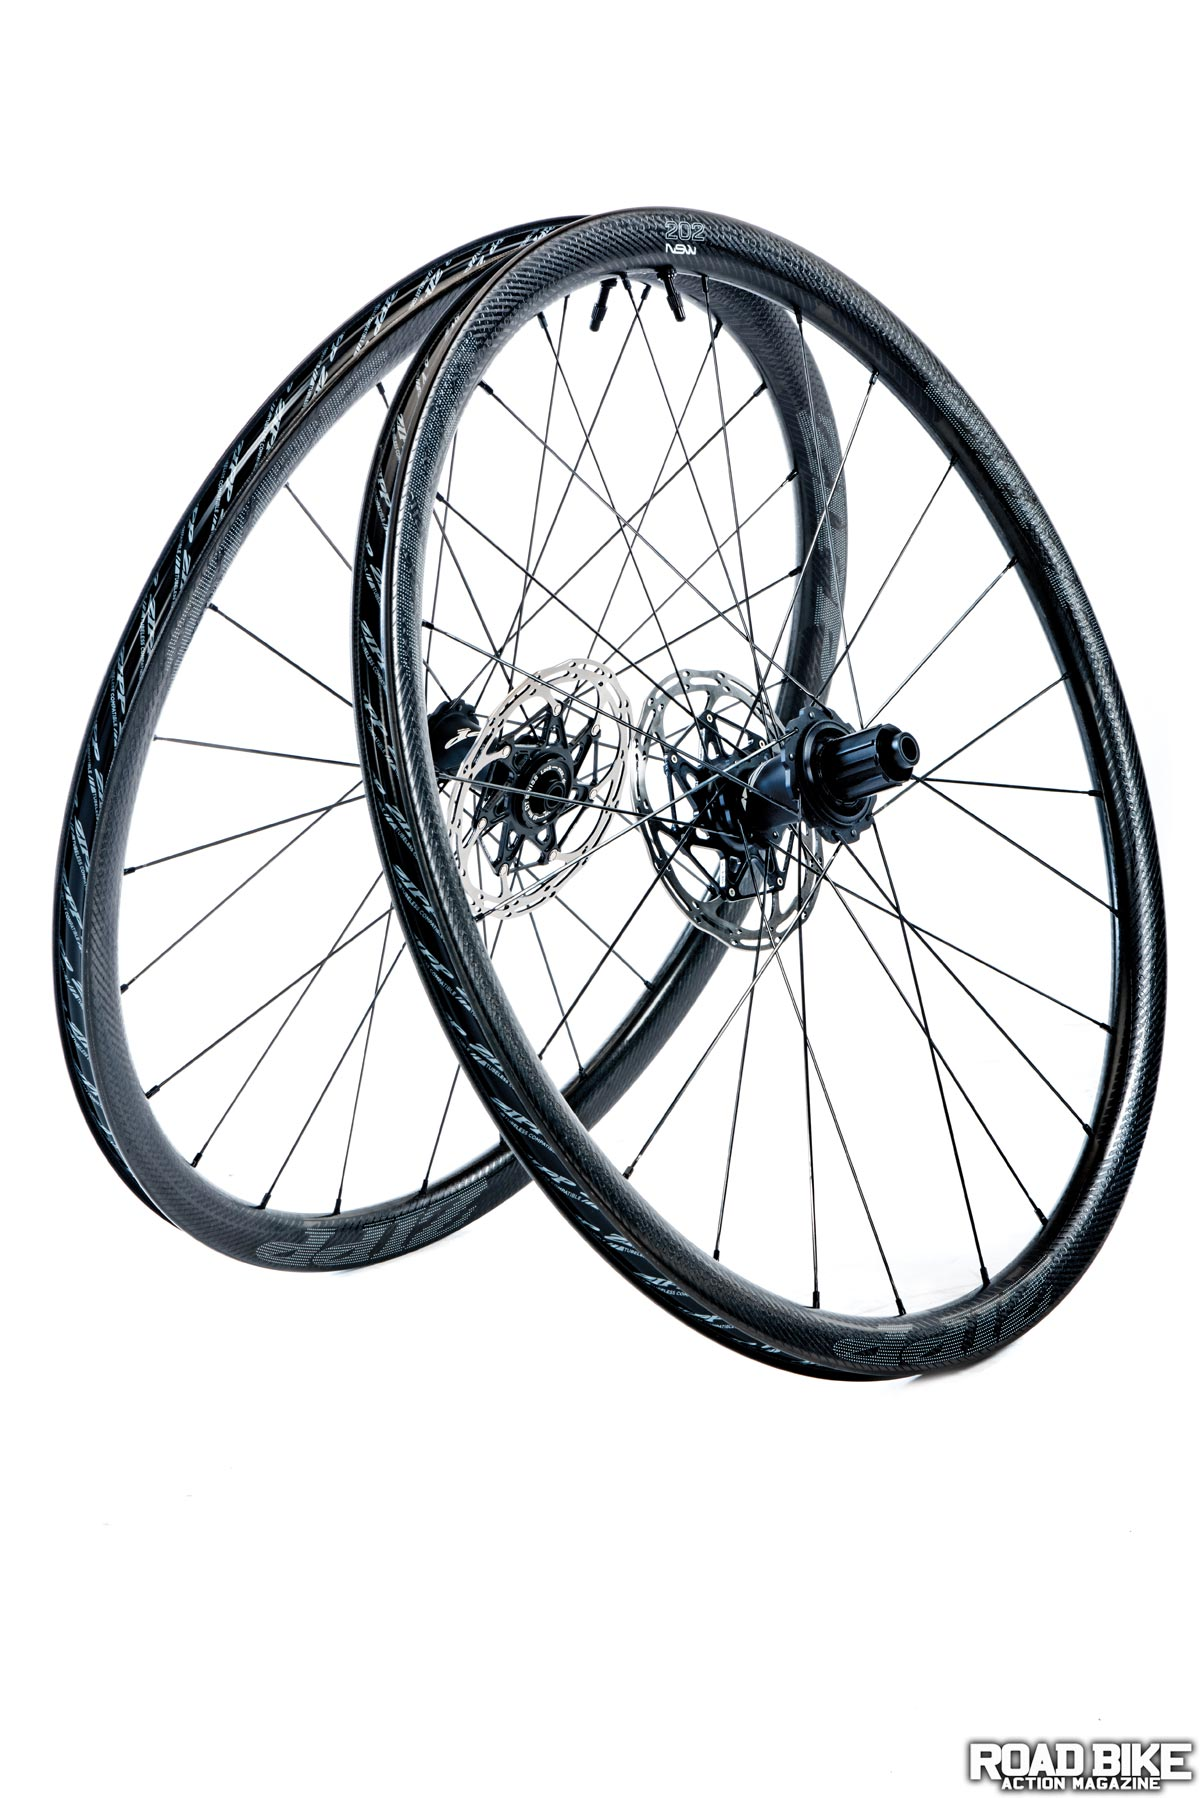 af16fe67122 The Zipp 202 NSW carbon clincher tubeless disc wheelset is their top-tier,  low-profile offering. This sets it apart, as it is part of the NSW line and  their ...